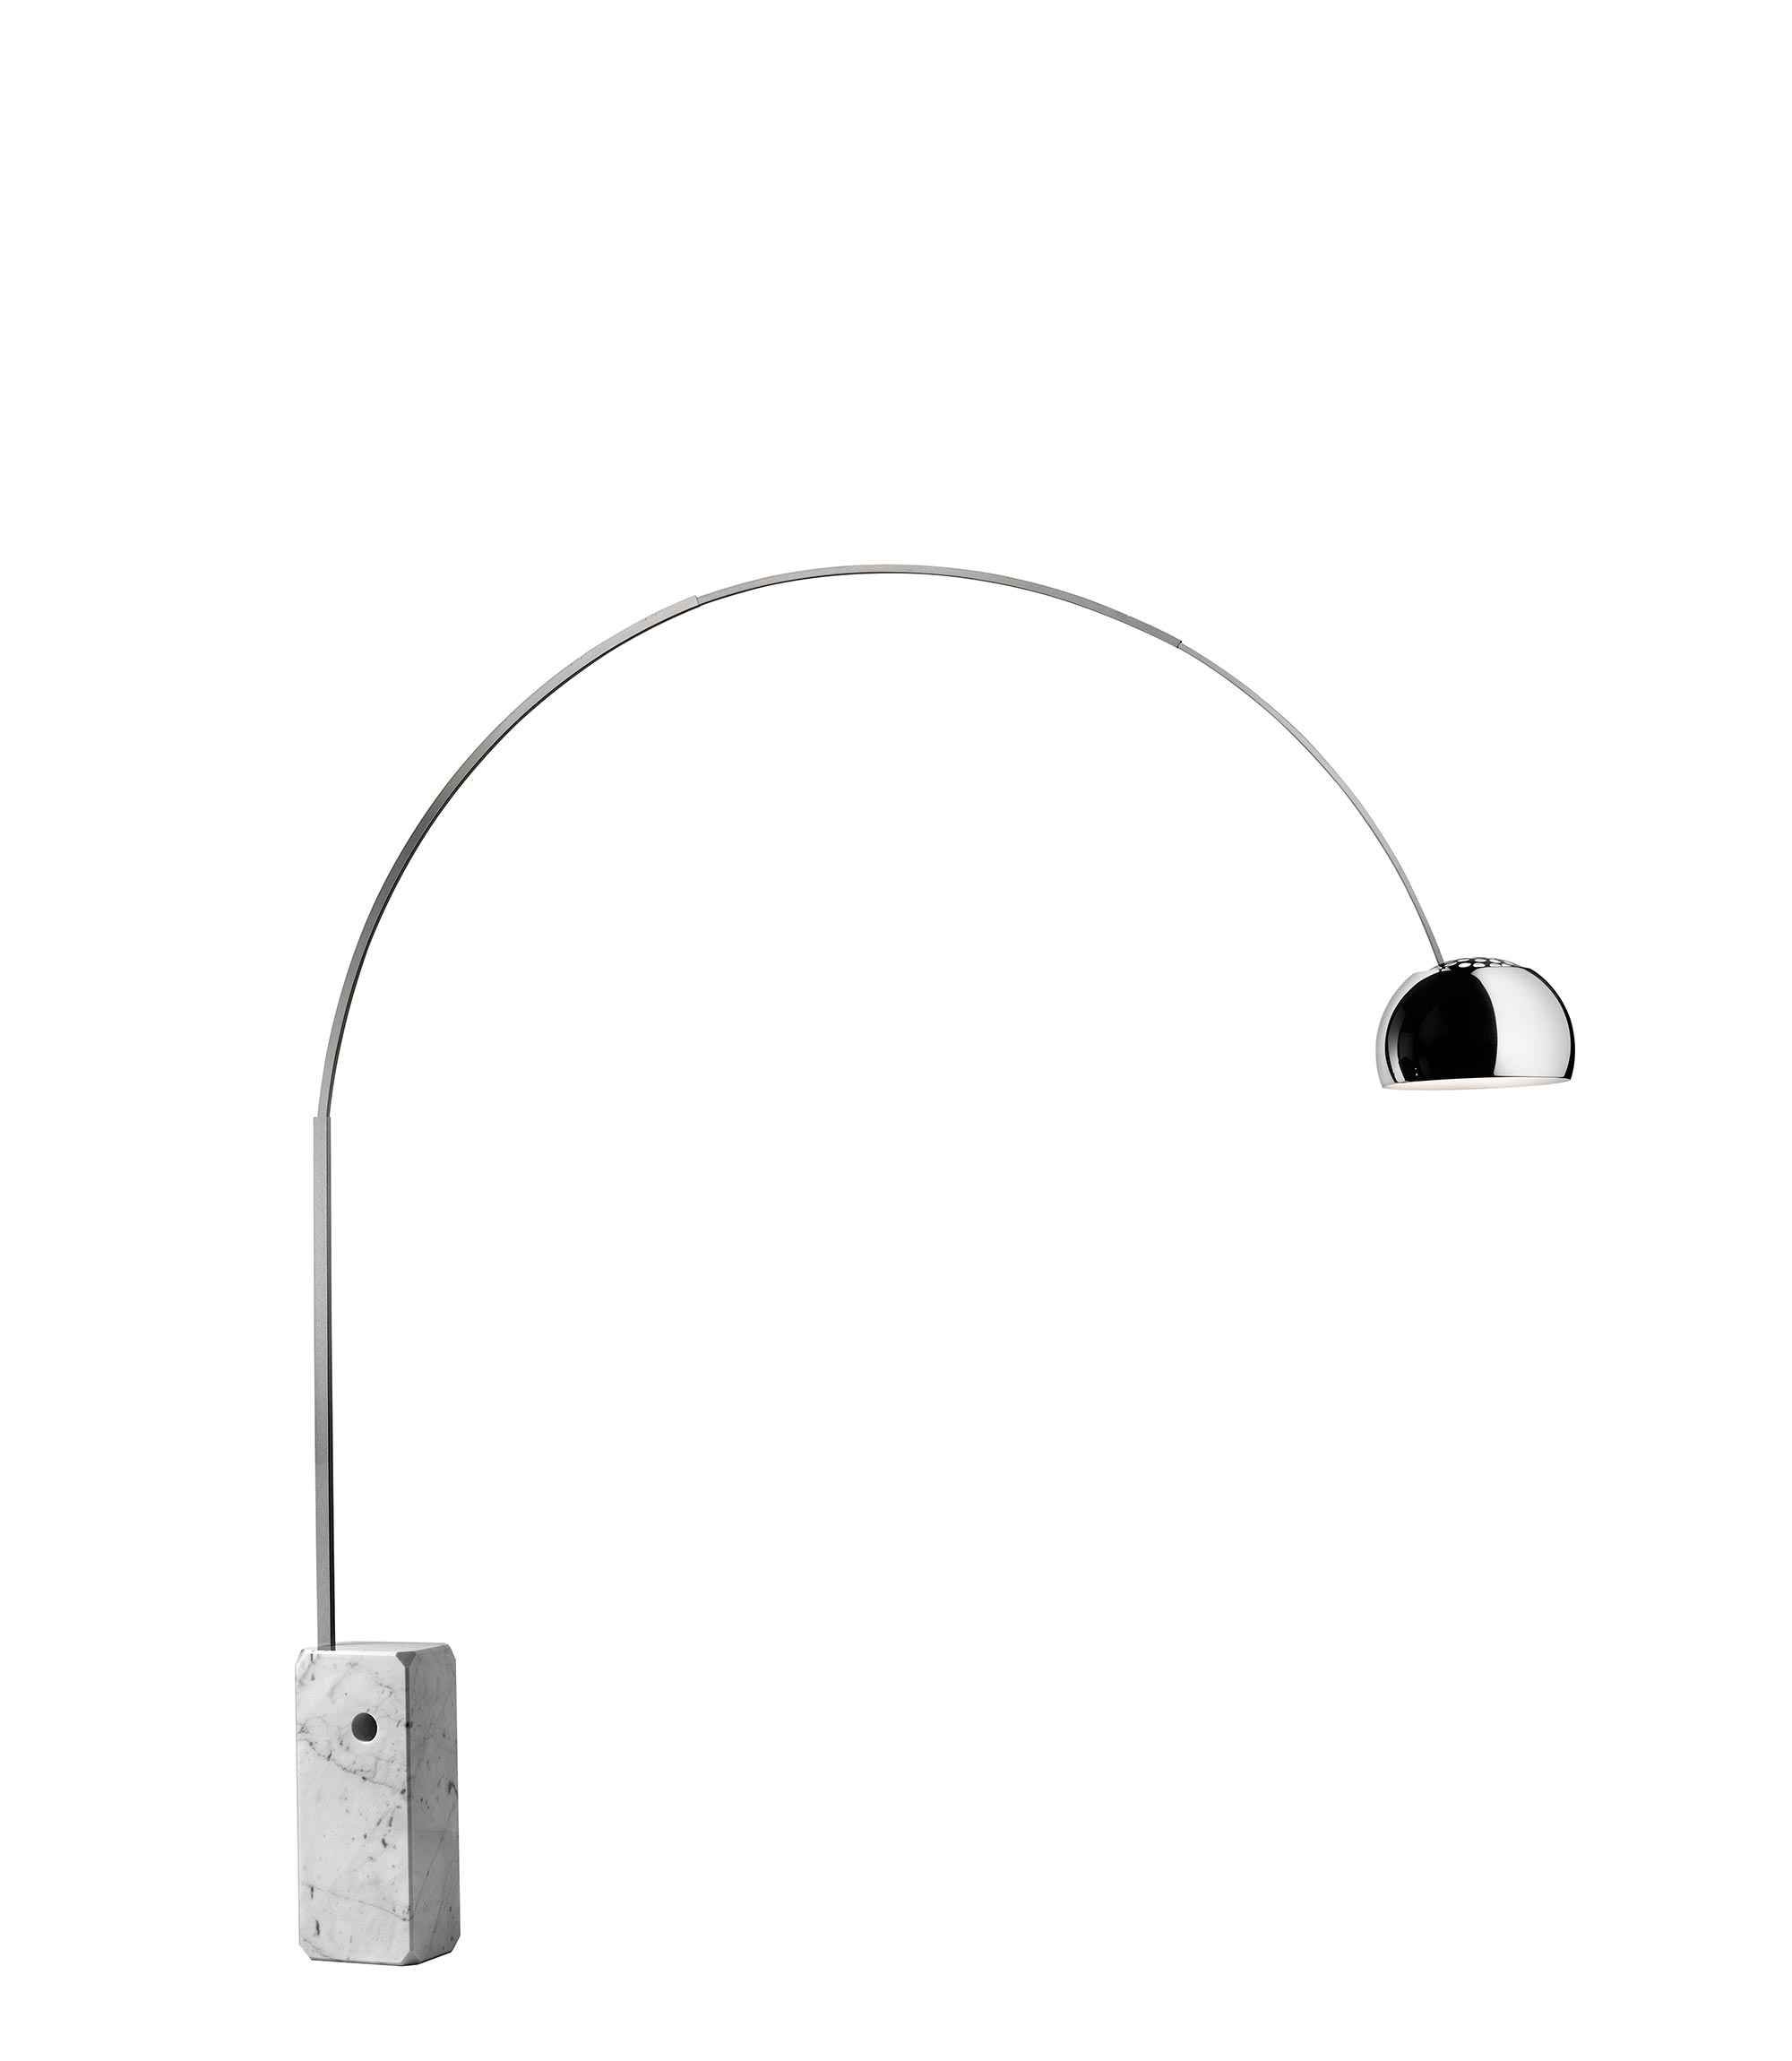 Arco led floor castiglioni flos F0303000 product still life big